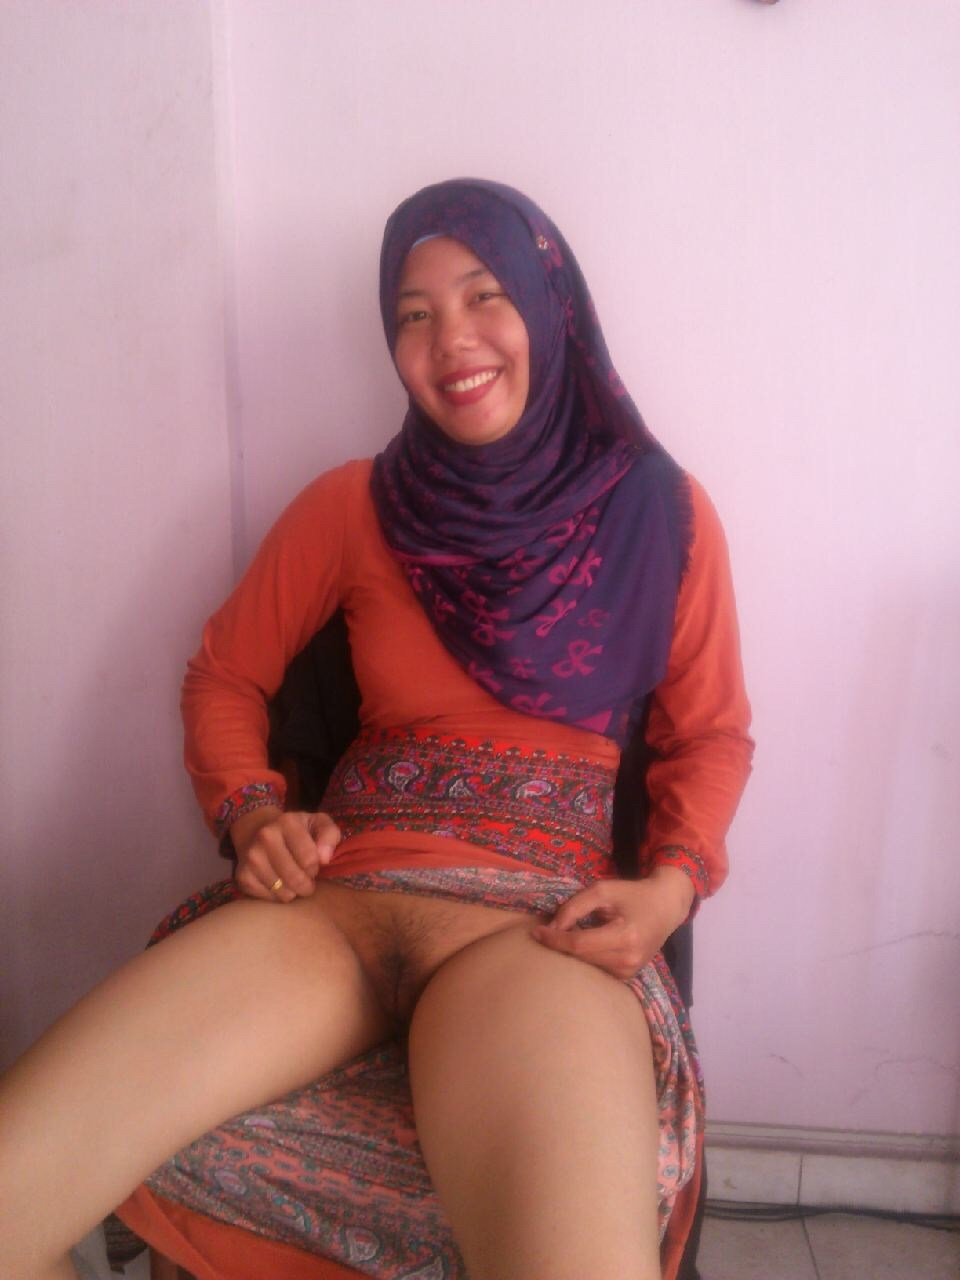 And Memek photo indonesia too! hummmm